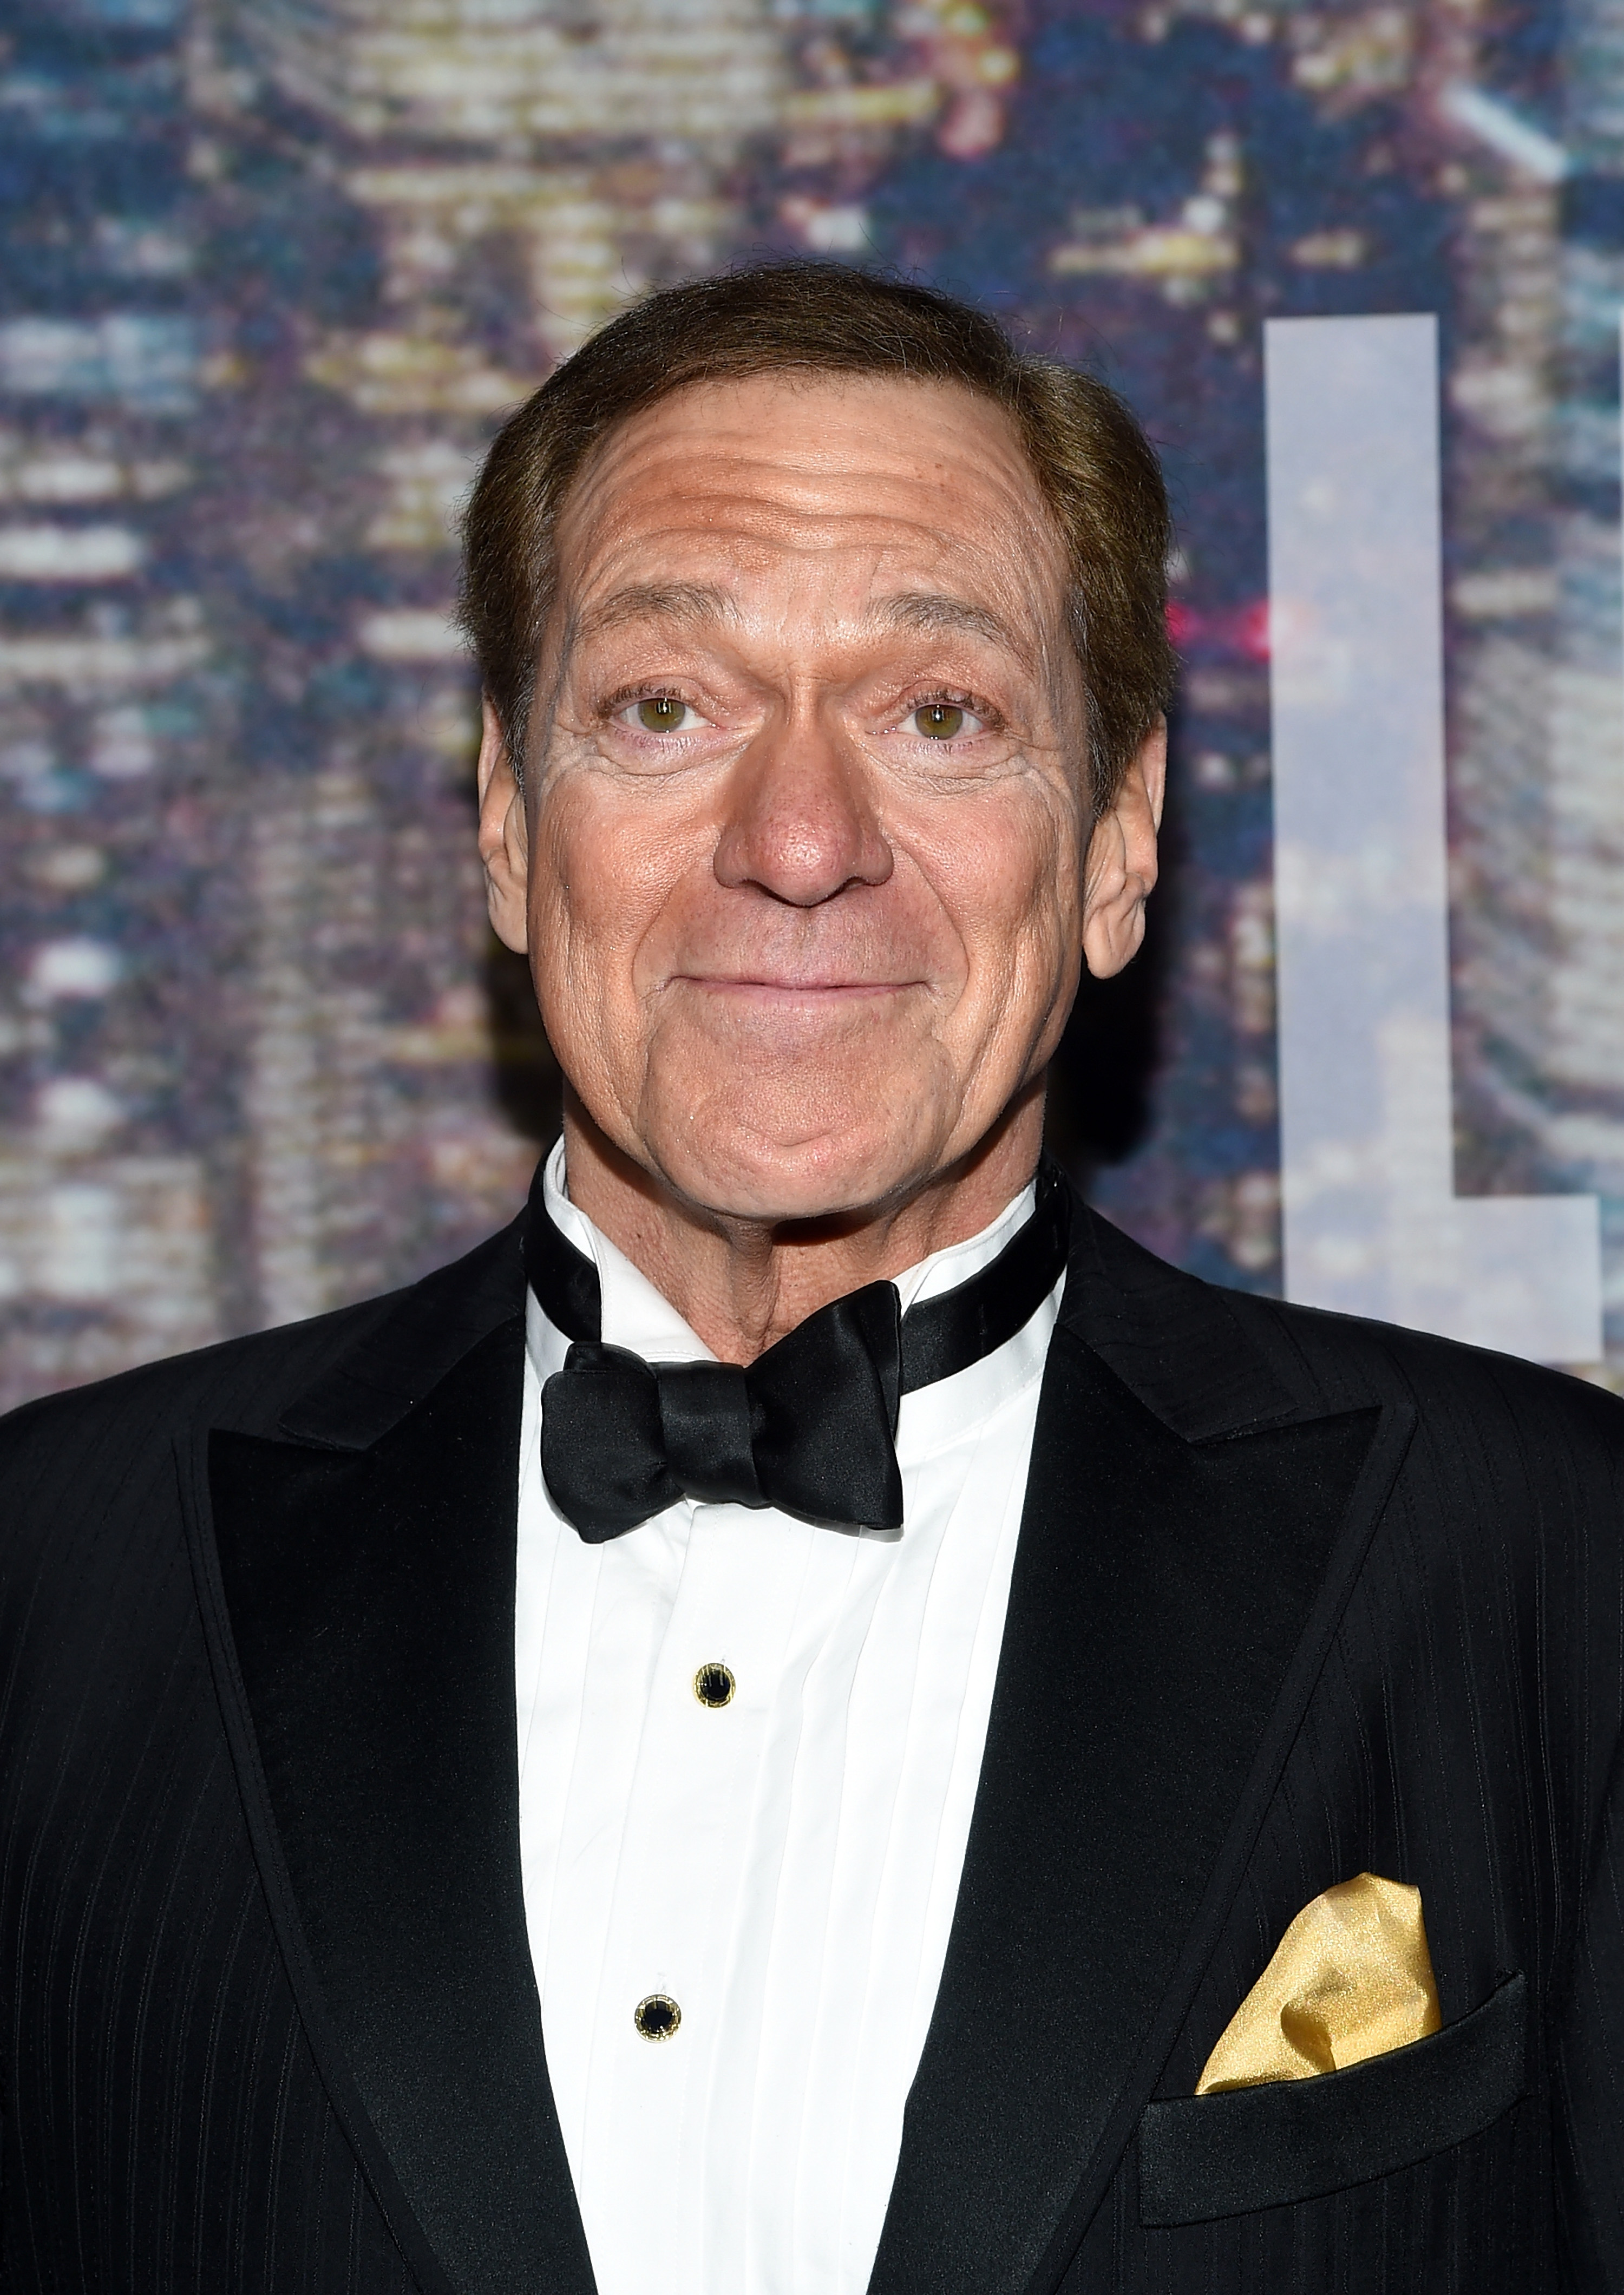 Comedian Joe Piscopo attends SNL 40th Anniversary Celebration at Rockefeller Plaza on February 15, 2015 in New York City.  (Photo by Larry Busacca/Getty Images)